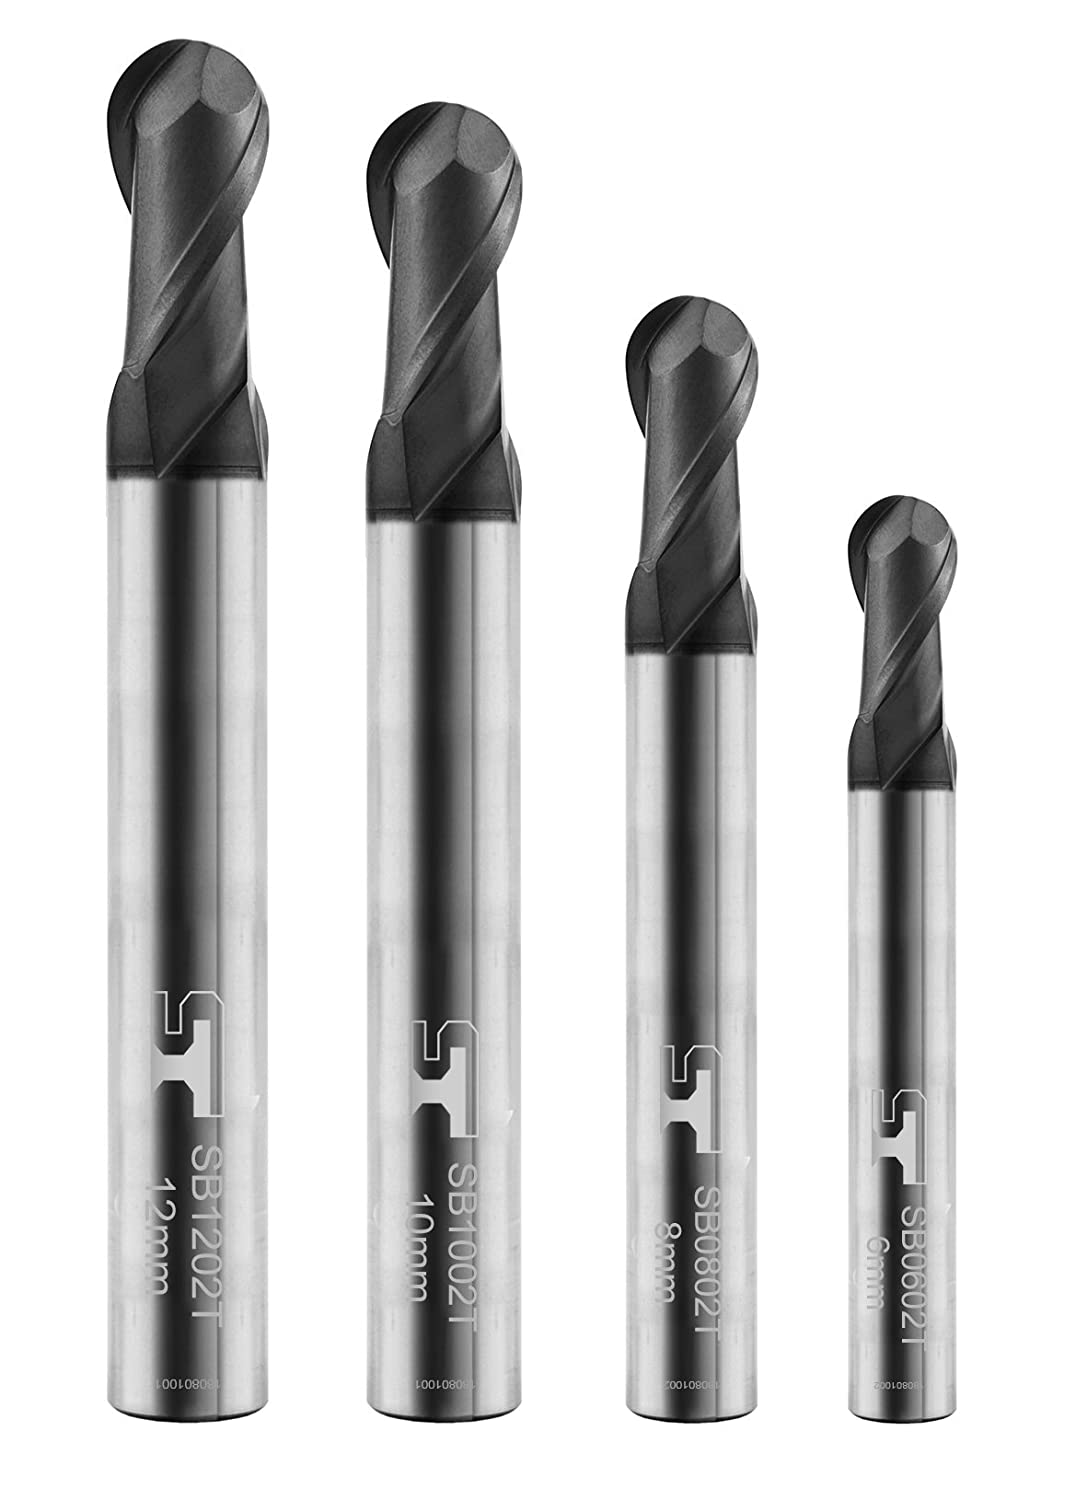 SB0602T SPEED TIGER SB Carbide Square End Mill Micro Grain Carbide End Mill for Alloy Steels//Hardened Steels 2 Flute 5 pieces, 6mm AlTiBN Coating